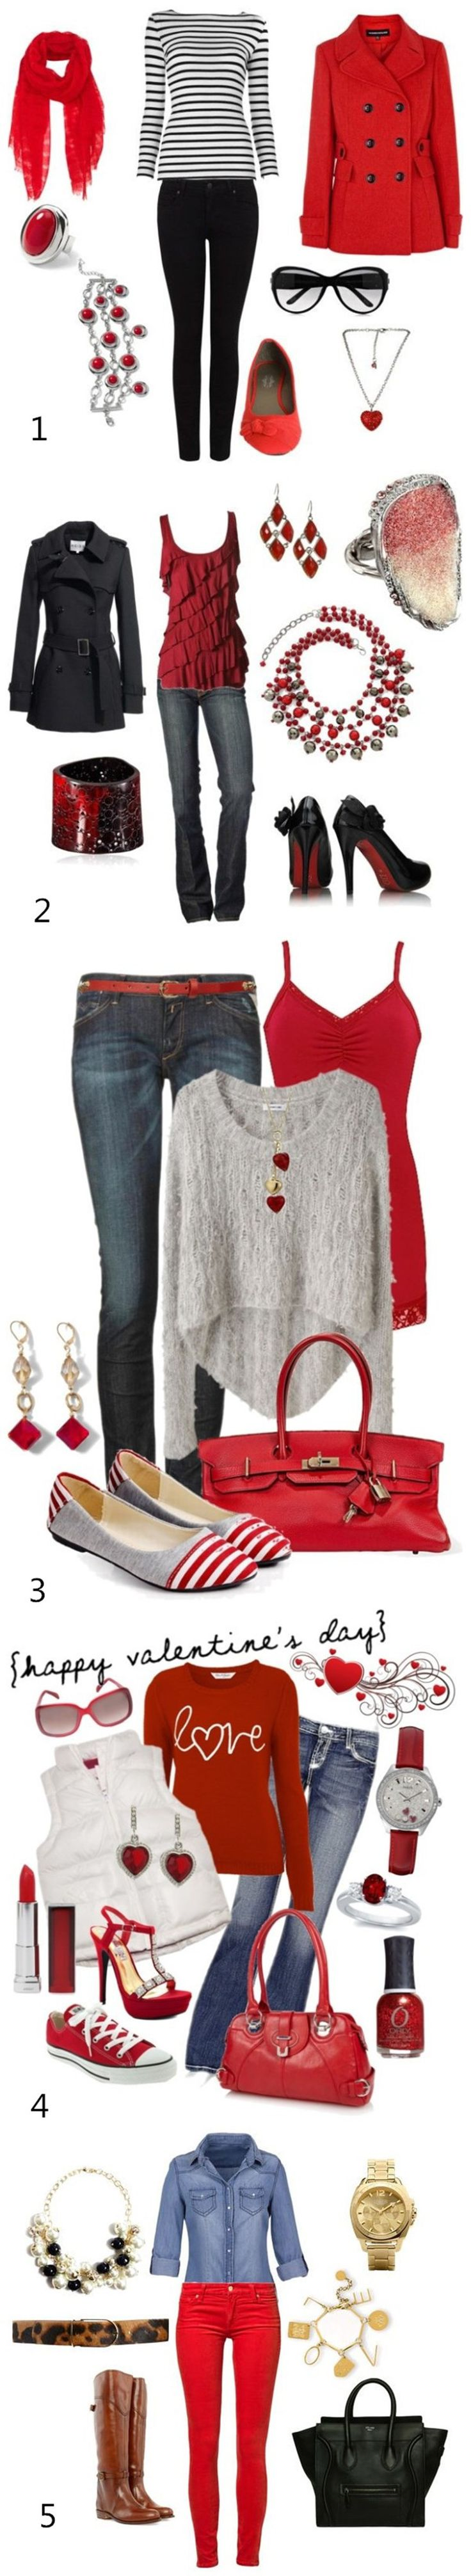 5 Valentine's Day Outfit Ideas  http://craftingwire.blogspot.com/2015/02/5-valentines-day-outfit-ideas.html